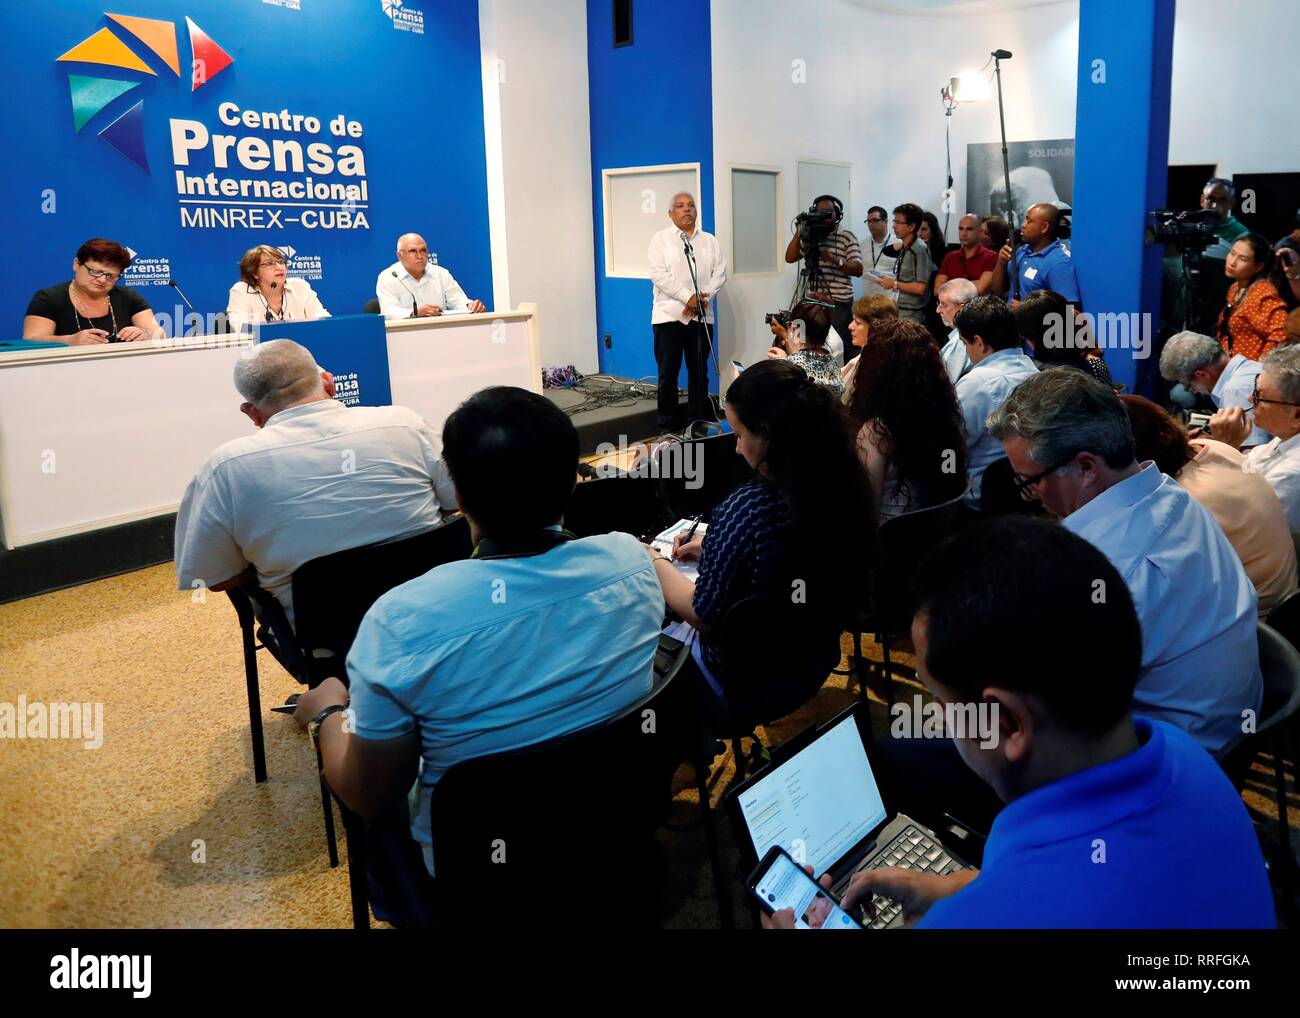 The president of the National Electoral Commission (CEN), Alina Balseiro (2-L), offers a press conference in Havana, Cuba, 25 February 2019. The draft new Constitution of Cuba, which replaces the one in force since 1976, was supported by 86.8% of voters in the referendum held on Sunday, in which the participation was 84.4%, according to preliminary data announced this Monday. Of the 7,848,000 million votes deposited, 86.8% went to accept the new text, 9% to reject it and the remaining 4.1% corresponded to blank or null votes, Balseiro informed. EFE/Ernesto Mastrascusa - Stock Image